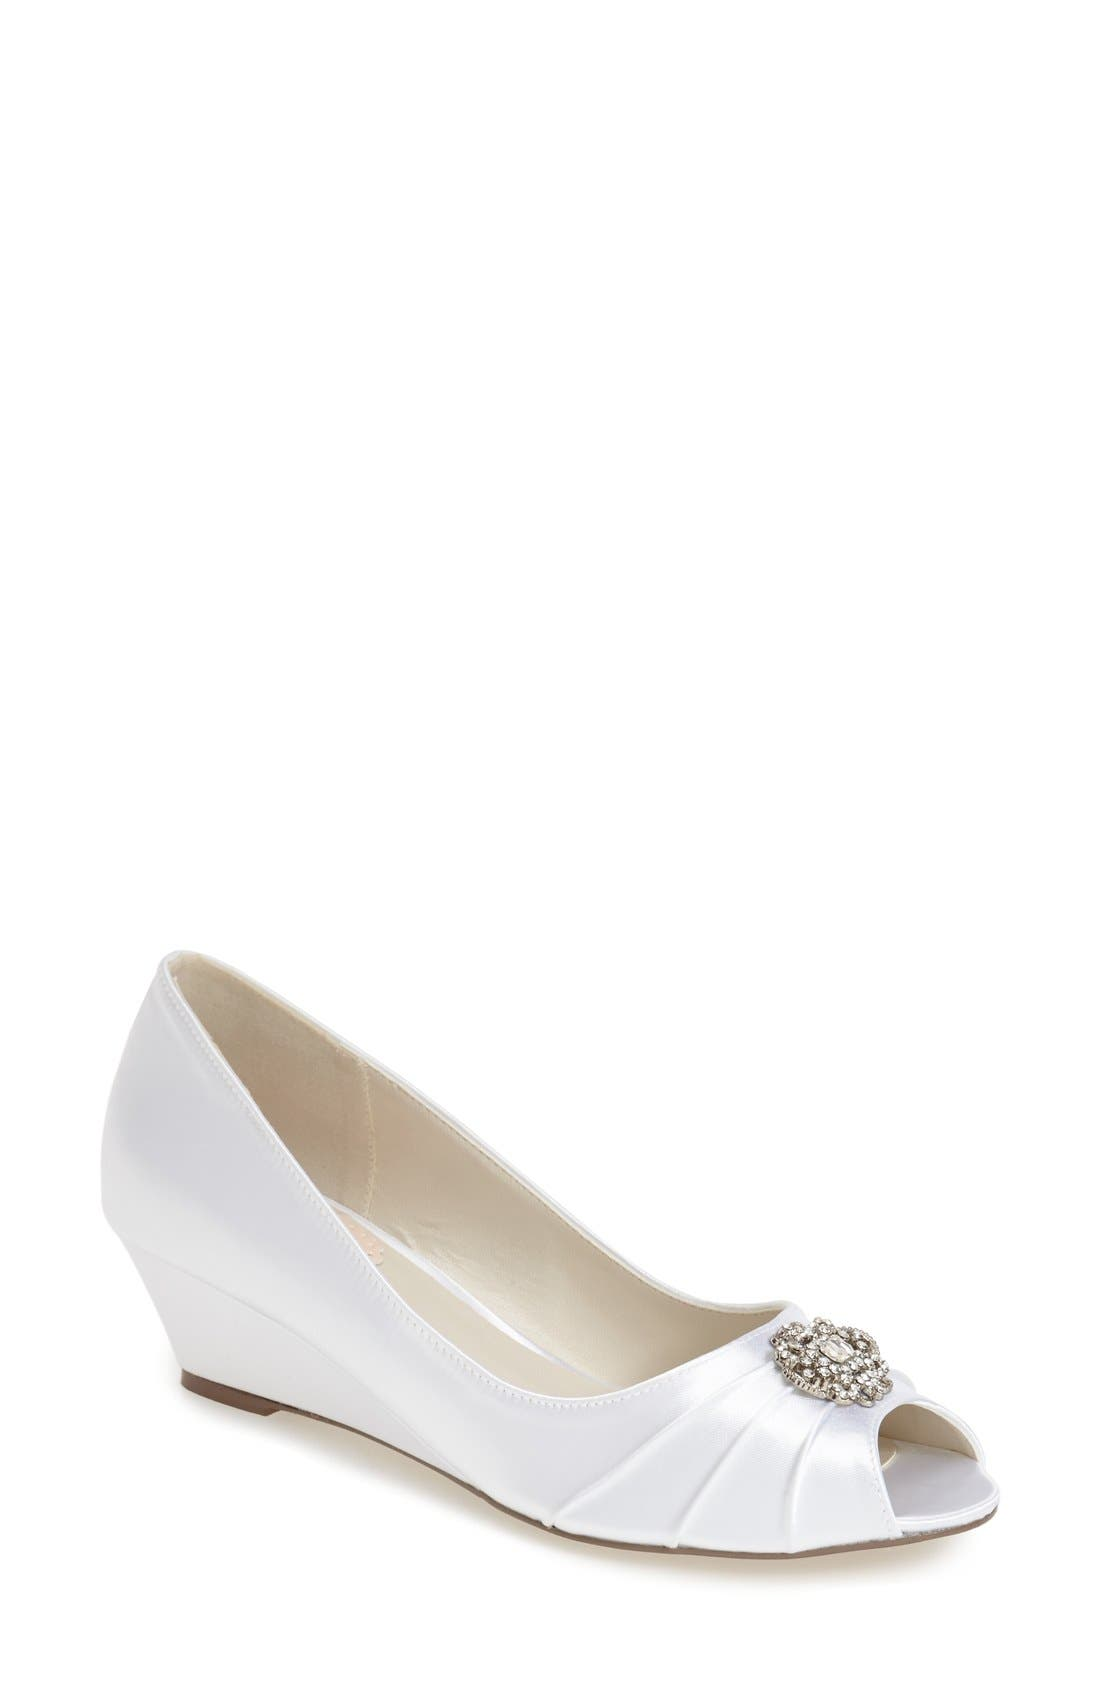 pink paradox london 'Coffee' Crystal Embellished Peep Toe Wedge (Women)